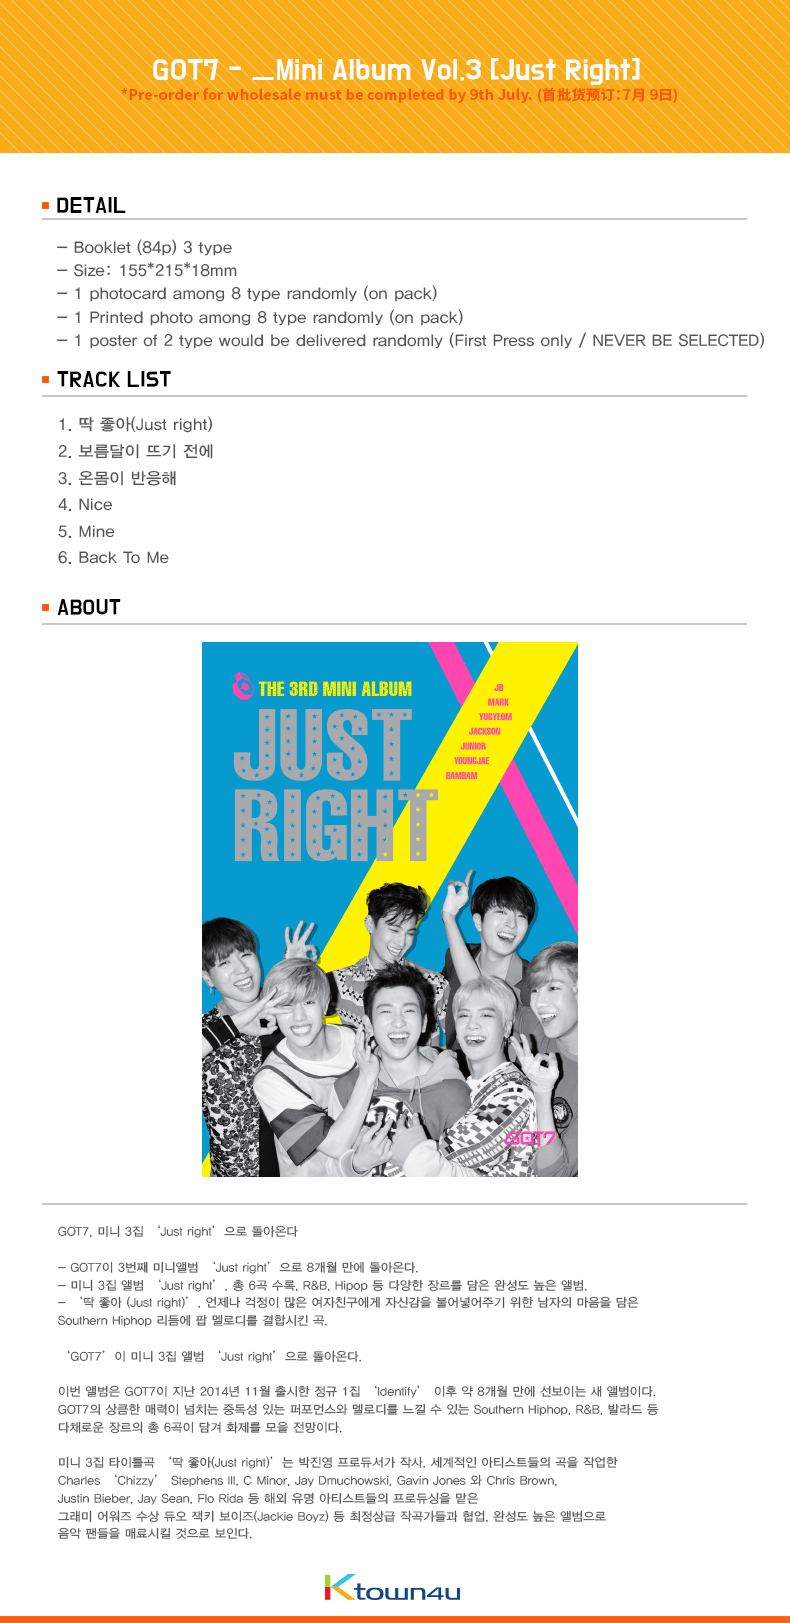 GOT7 - Mini Album Vol.3 [Just Right]